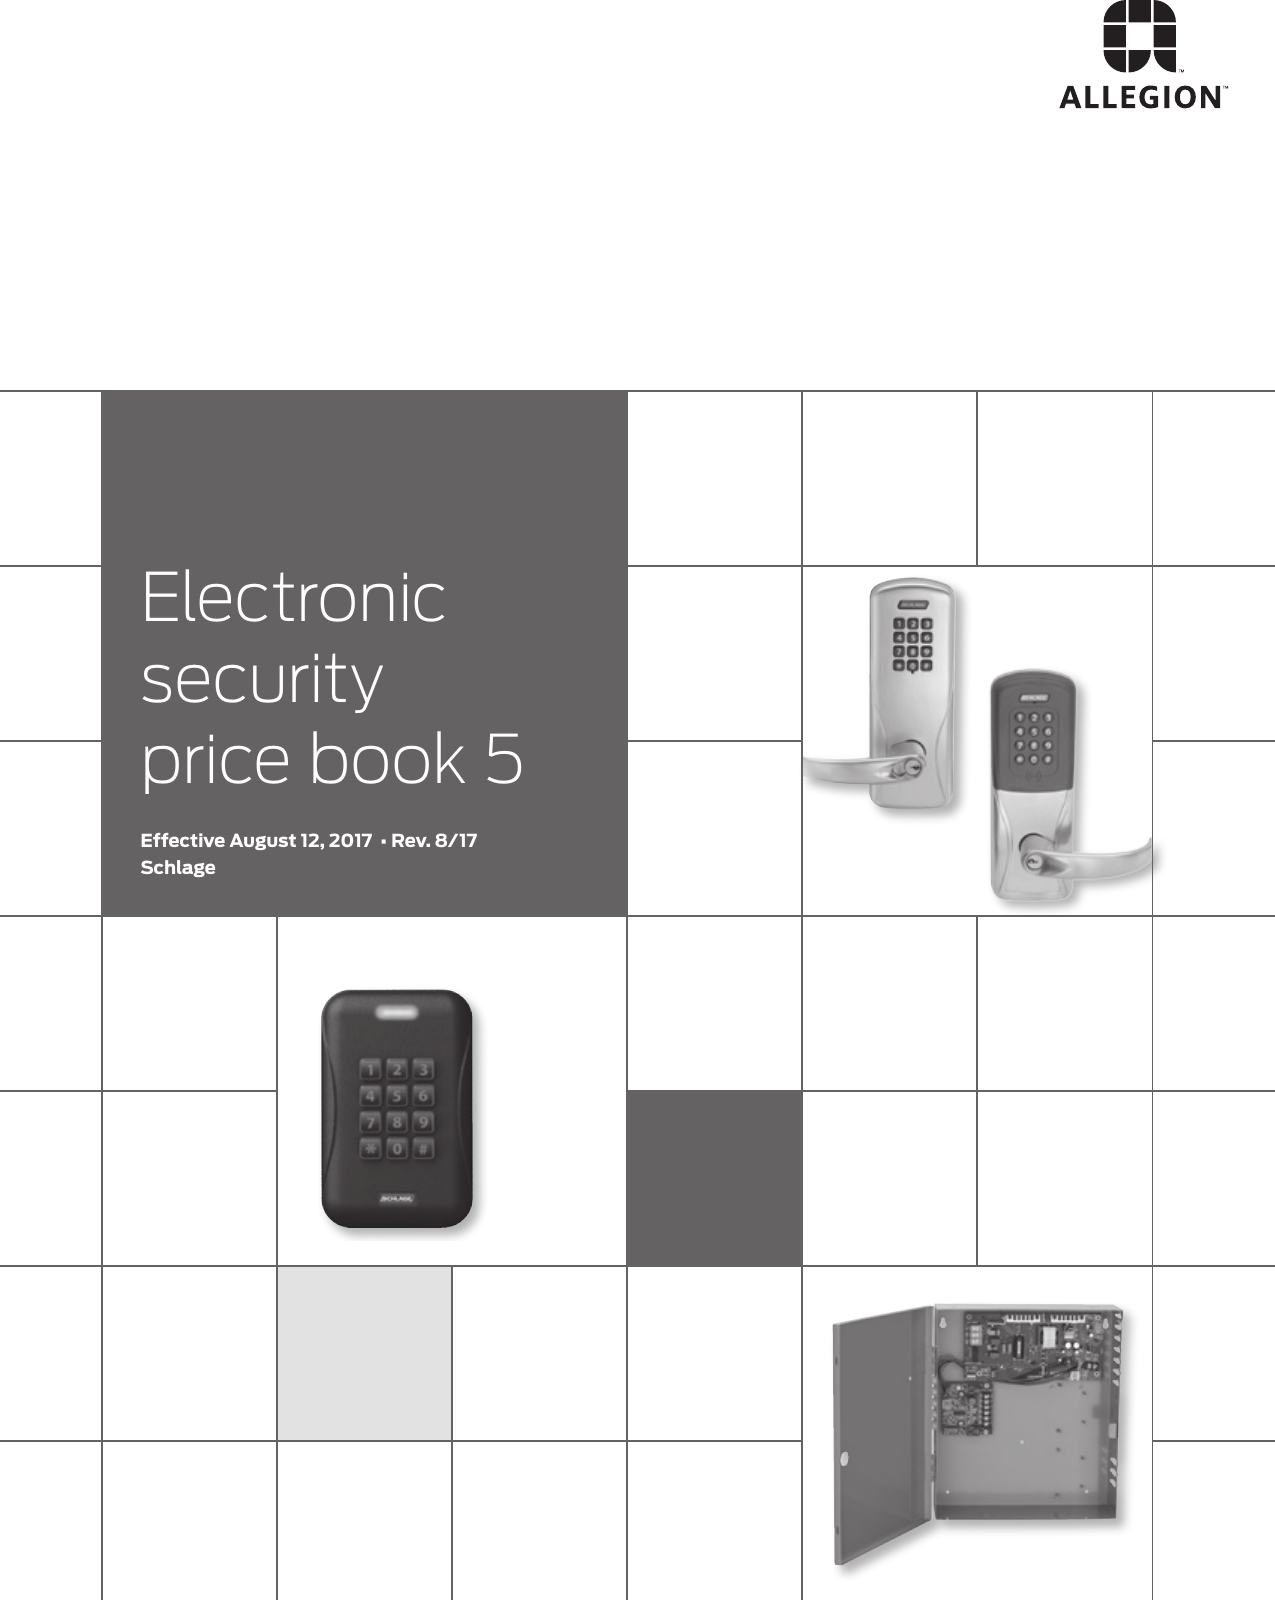 Schlage Maglock M490 Wiring Diagram Electrical Diagrams Electronics Price Book 2017 Commercial Magnetic Door Lock Systems